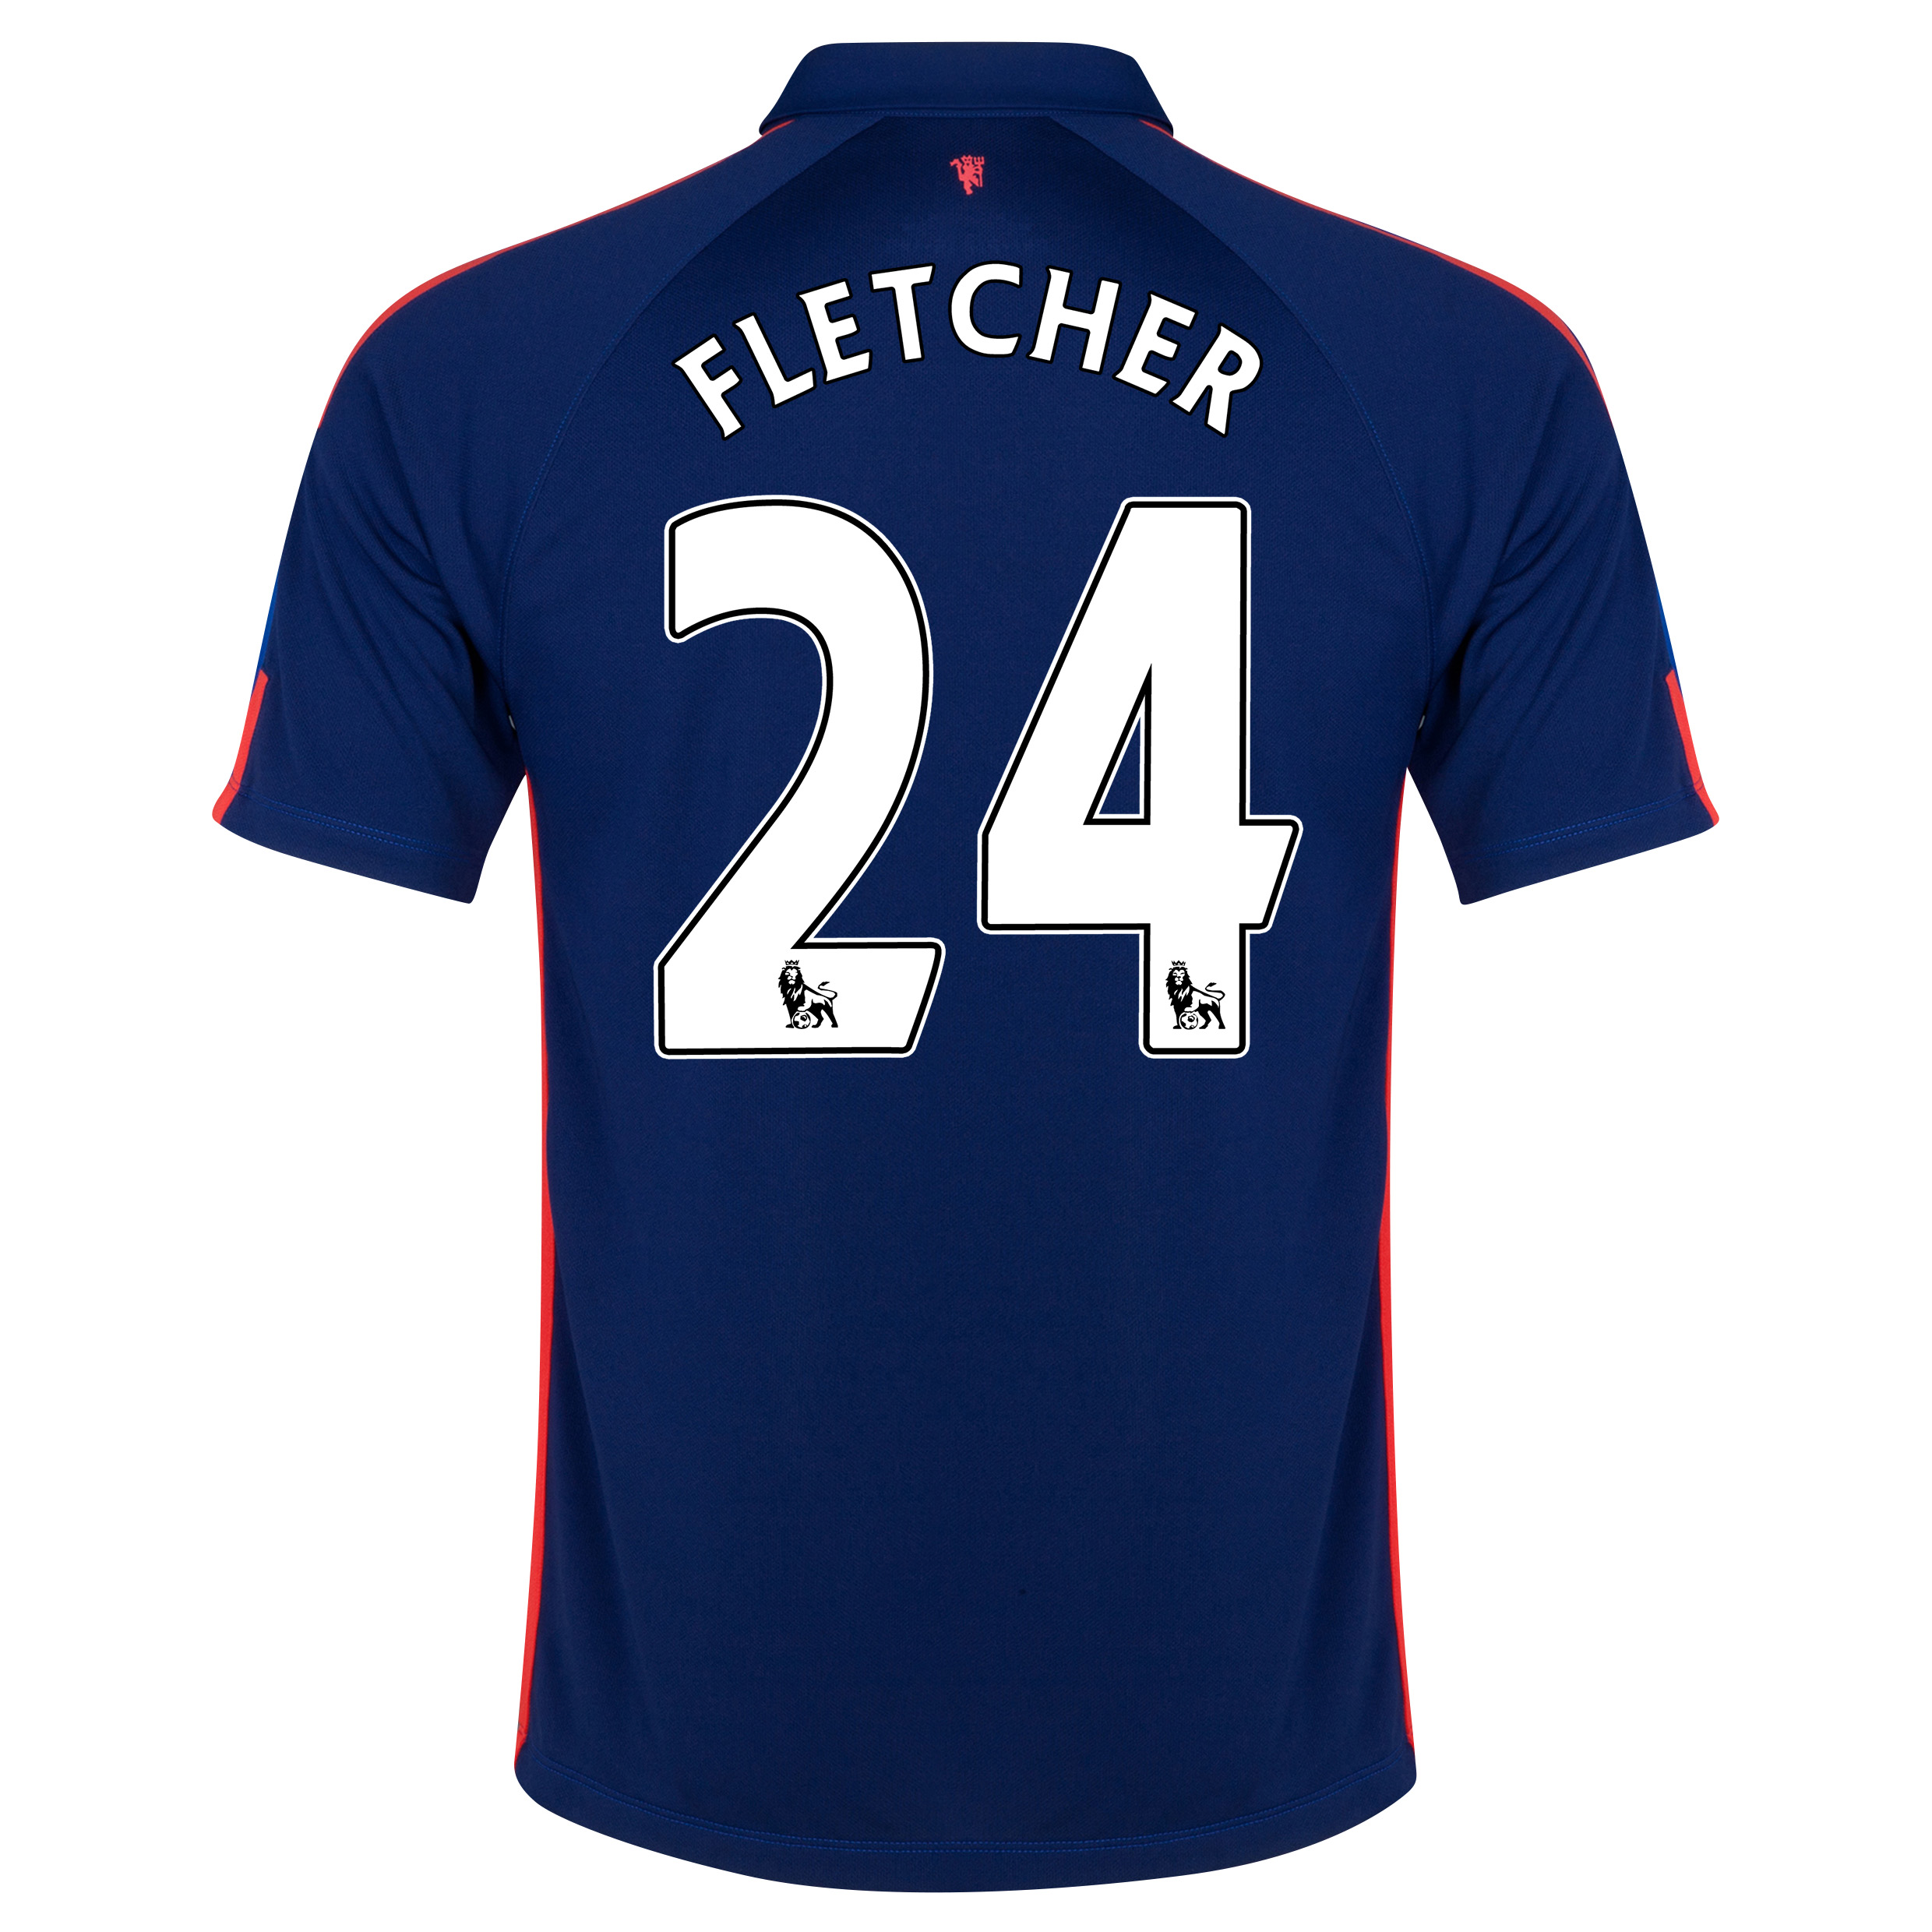 Manchester United Third Kit 2014/15 - Little Boys with Fletcher 24 printing